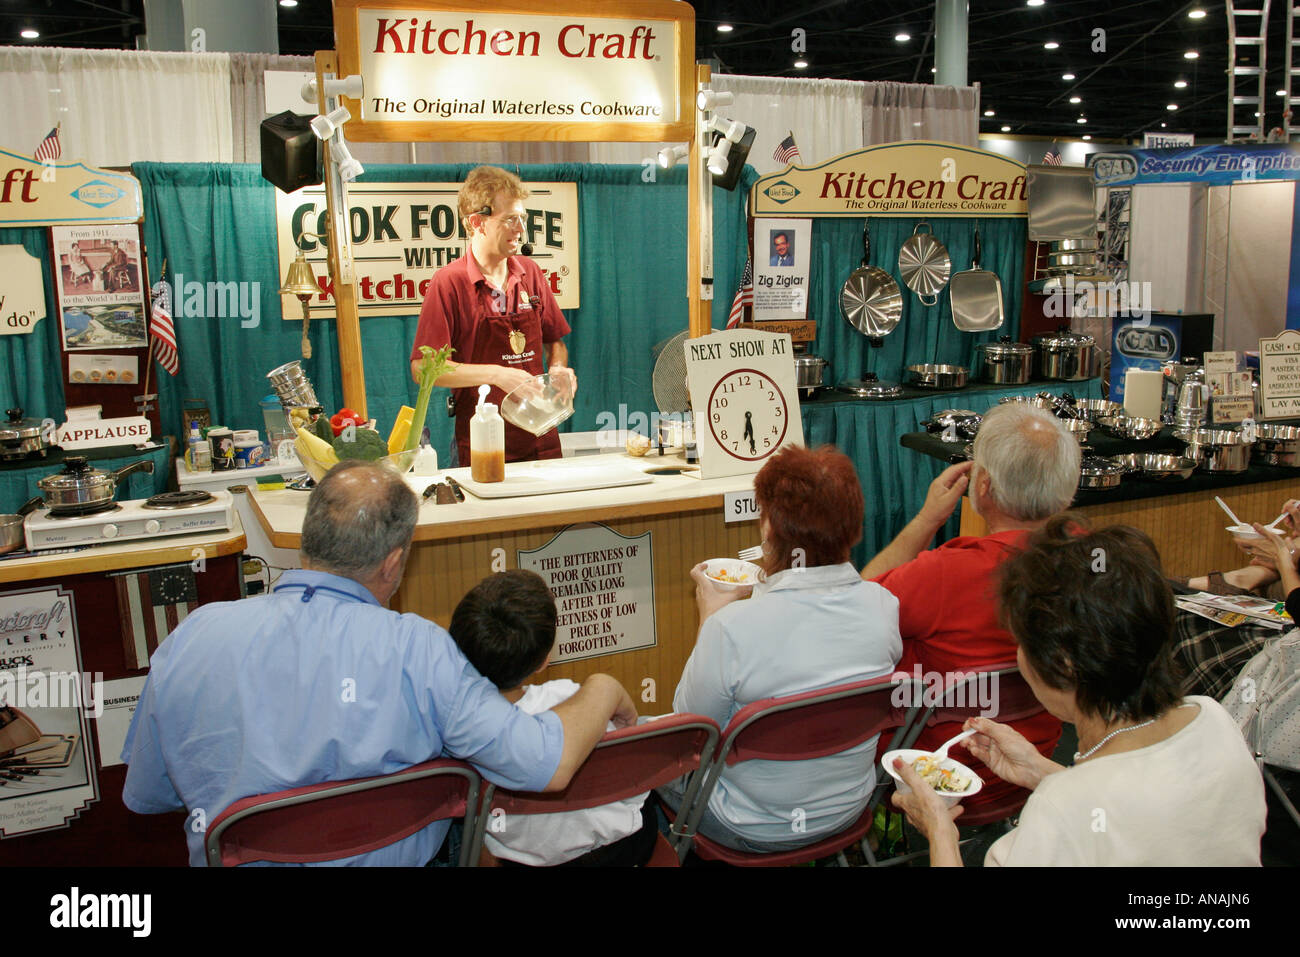 Miami Beach Florida Convention Center Home Design And Remodeling Show Food  Cooking Demonstration